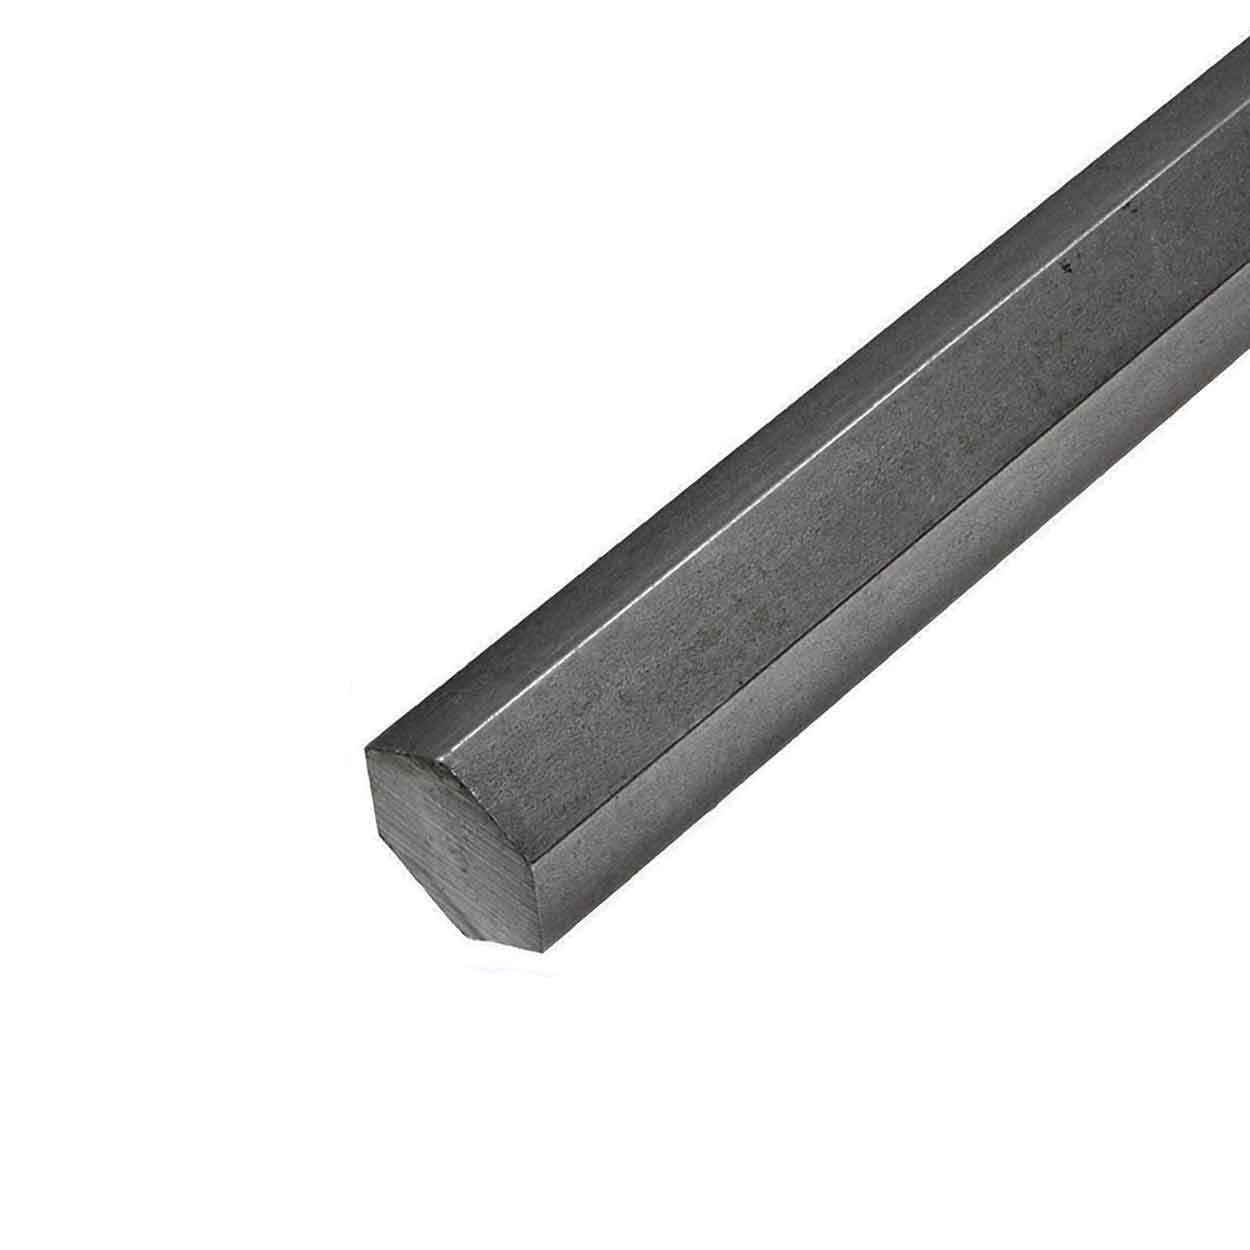 Alloy and Carbon Steel Hexagon Bar